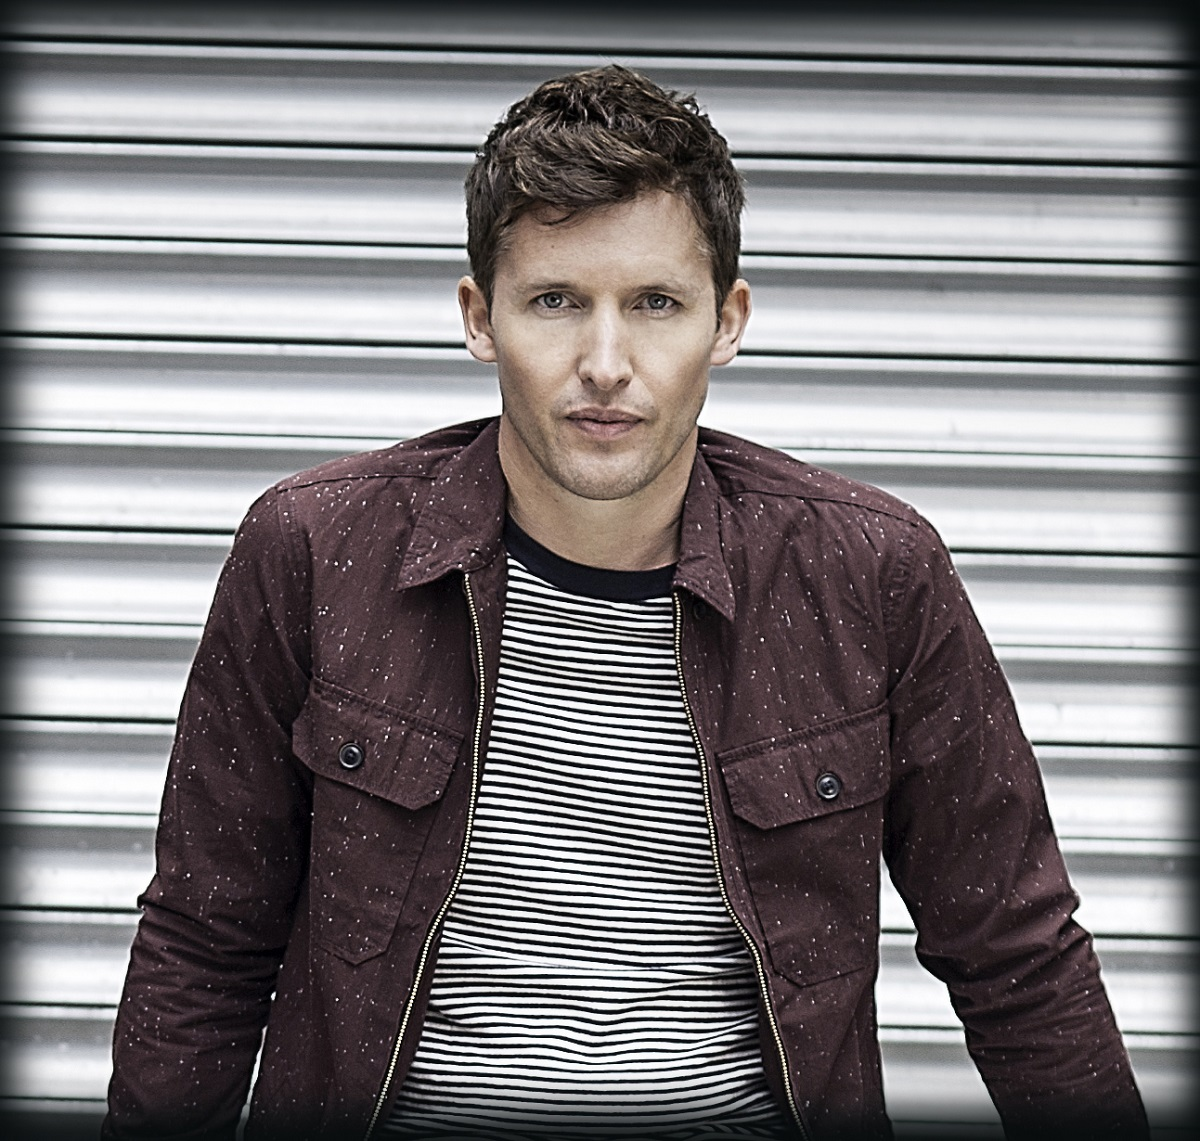 James Blunt headlines Wickham Festival 2014